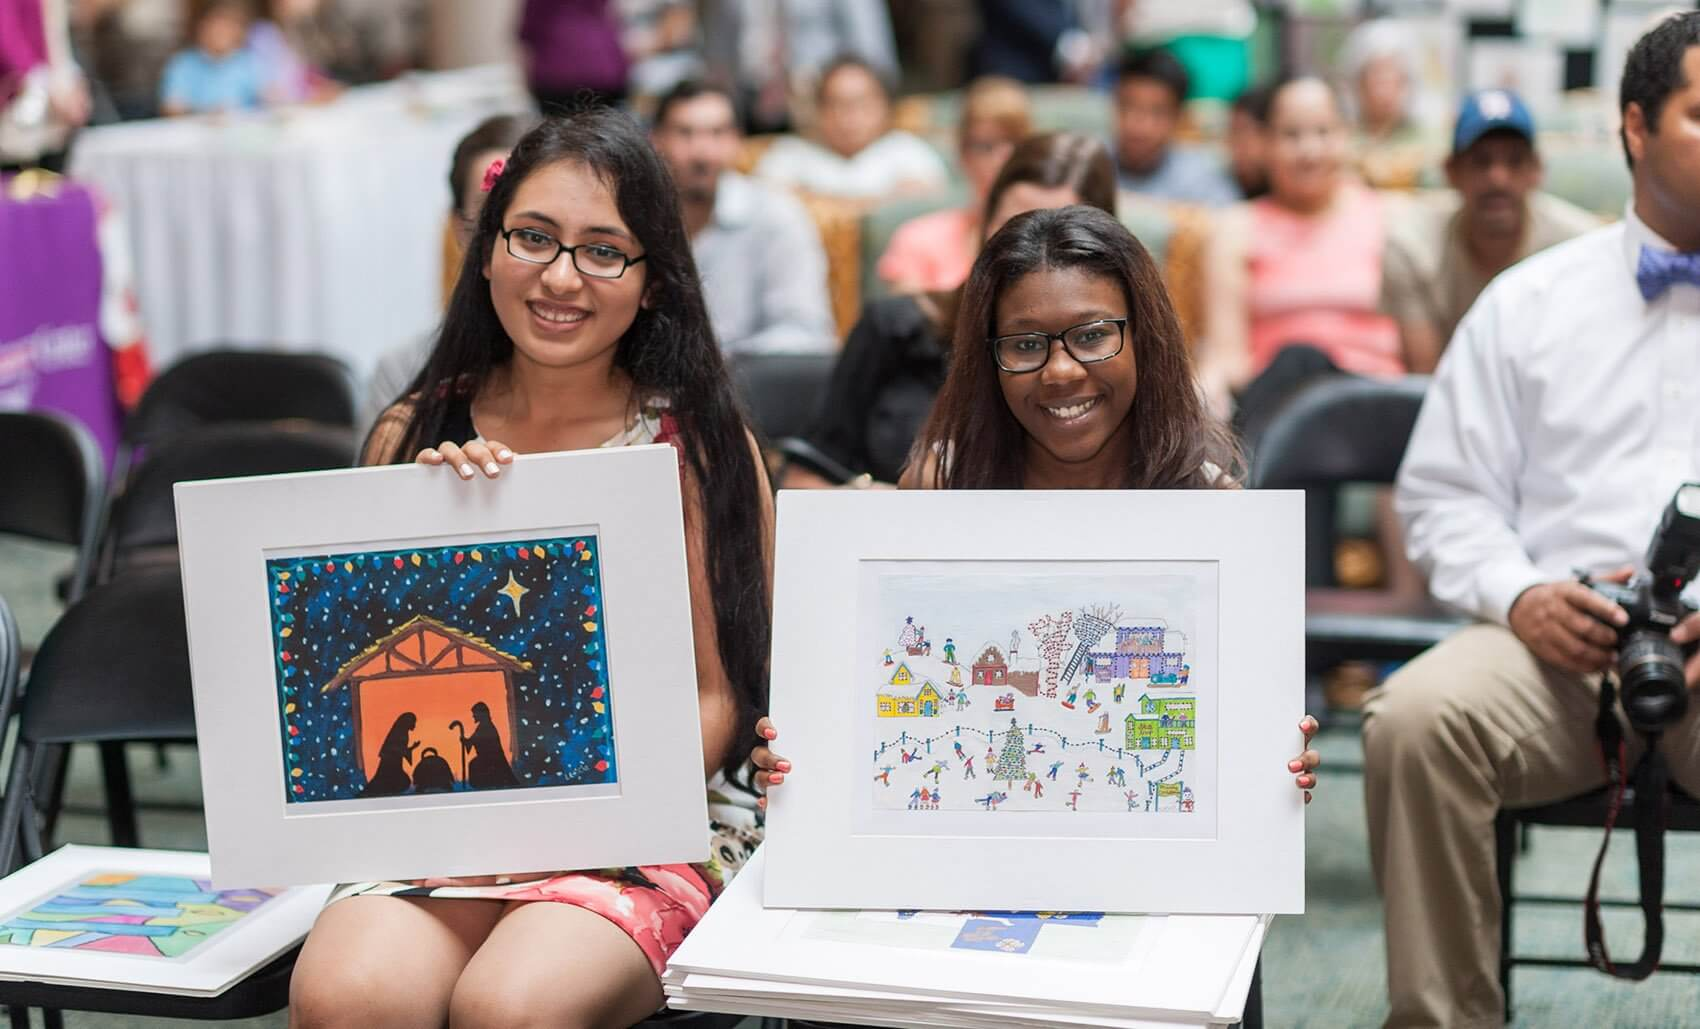 Leticia Torres and Kierra Hill with their designs. (Credit: MD Anderson Cancer Center)